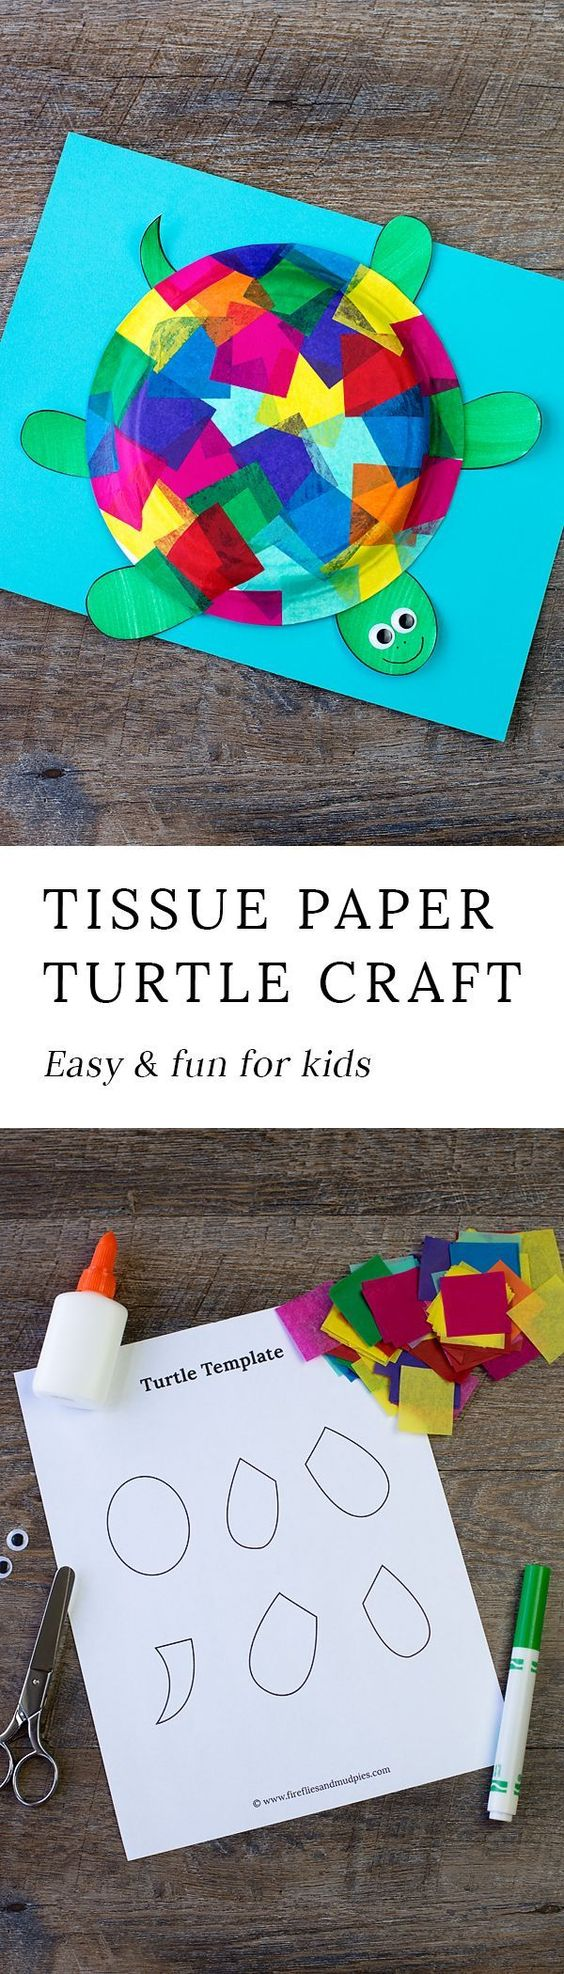 This easy and fun Tissue Paper and Paper Plate Turtle craft includes a free printable template, making it perfect for home, school, daycare, or camp. via @https://www.pinterest.com/fireflymudpie/ #ad